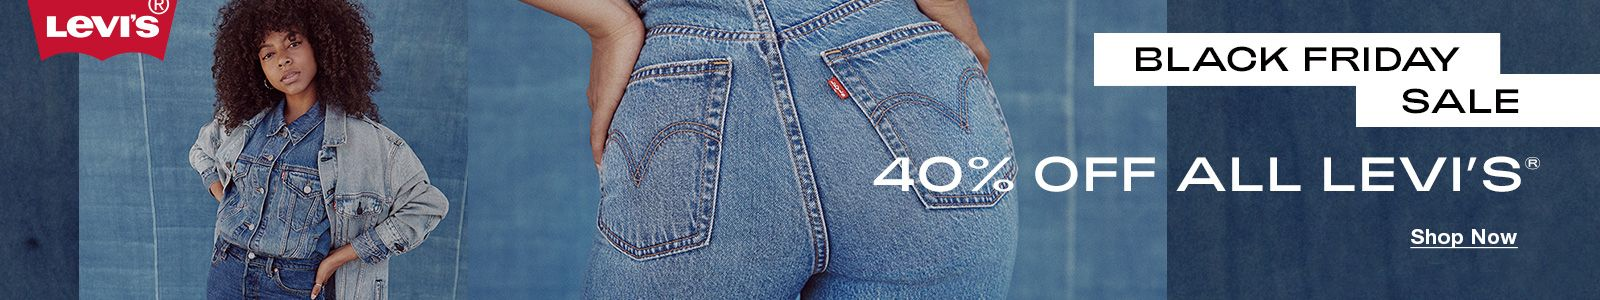 Black Friday Sale, 40 % Off All Levi's, Shop Now